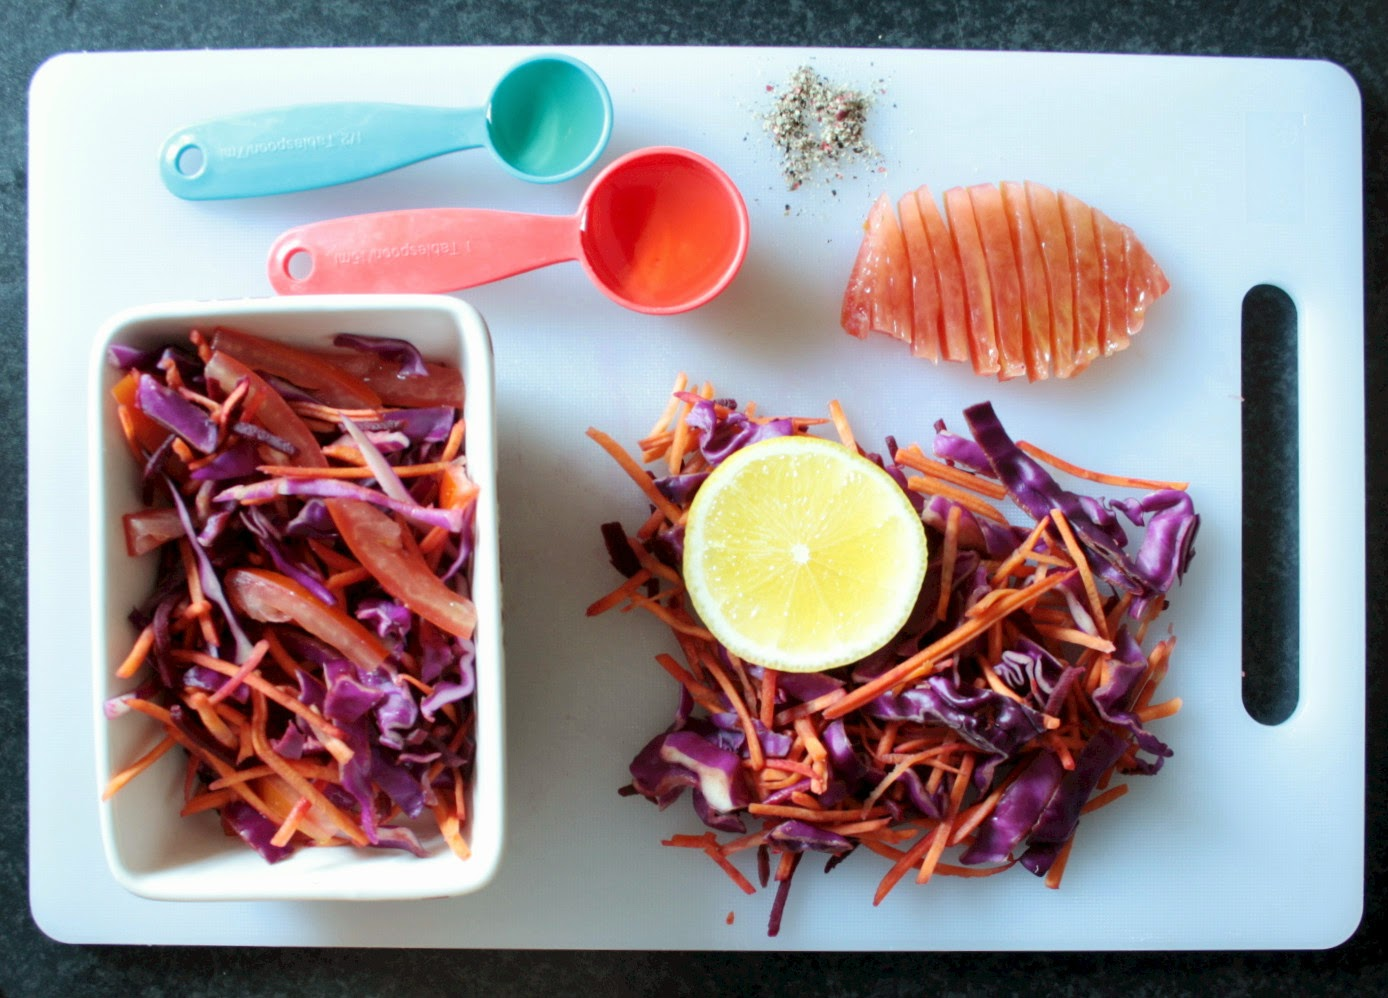 A quick and easy beetroot, cabbage and carrot coleslaw with a white wine vinegar and lemon dressing.  No mayonnaise used to very light and healthy!